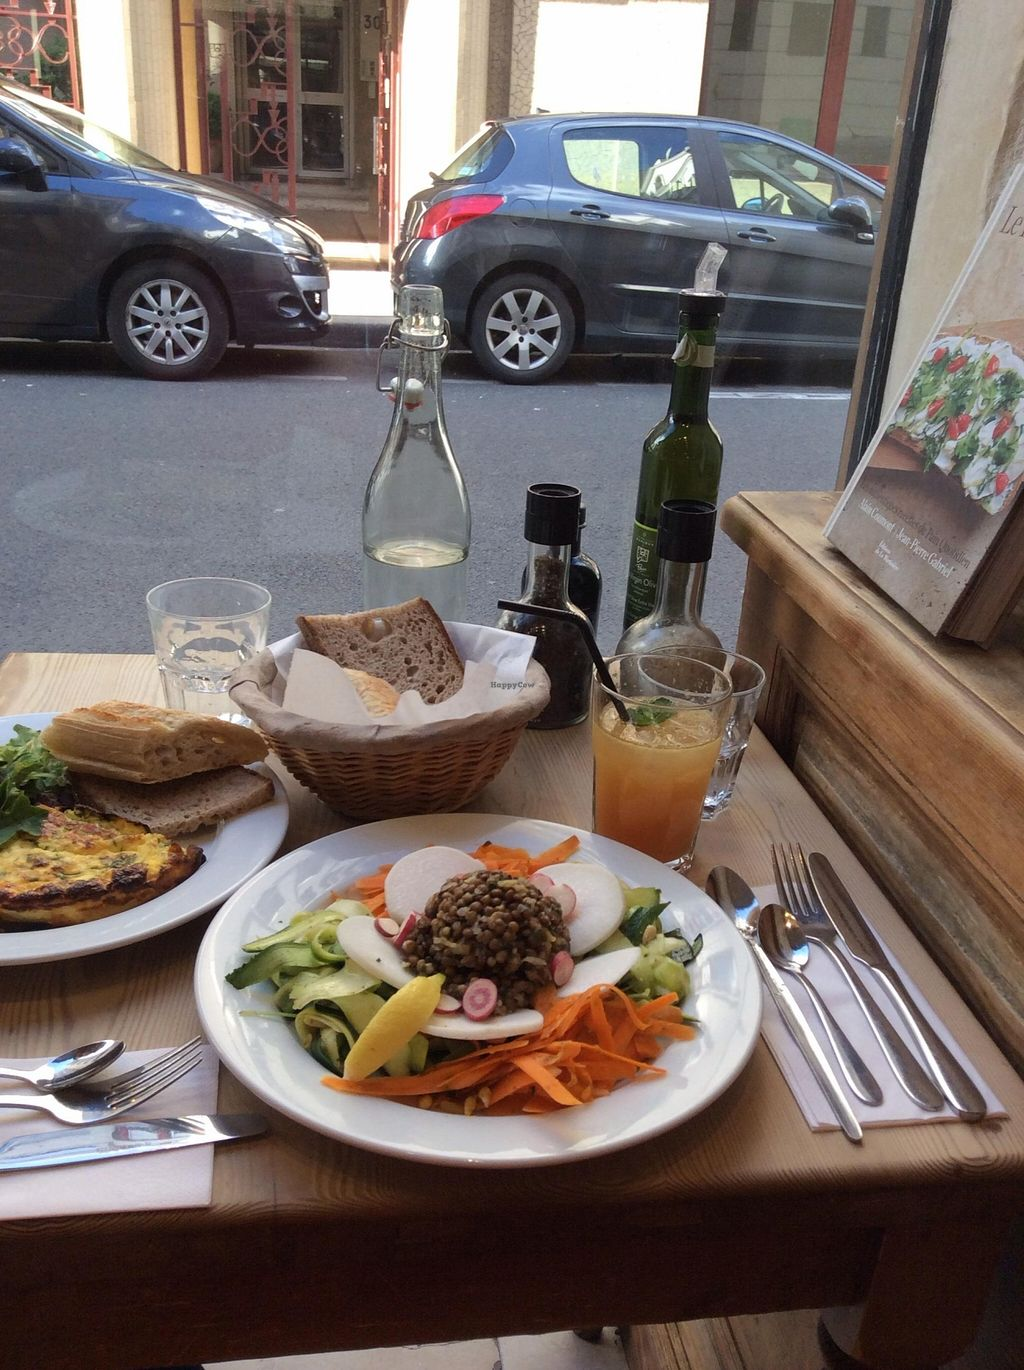 Photo of Le Pain Quotidien - Varenne  by karolina.bujakova <br/>Detox salad, tumeric tonic and gluten-free bread <br/> September 10, 2015  - <a href='/contact/abuse/image/44132/117188'>Report</a>